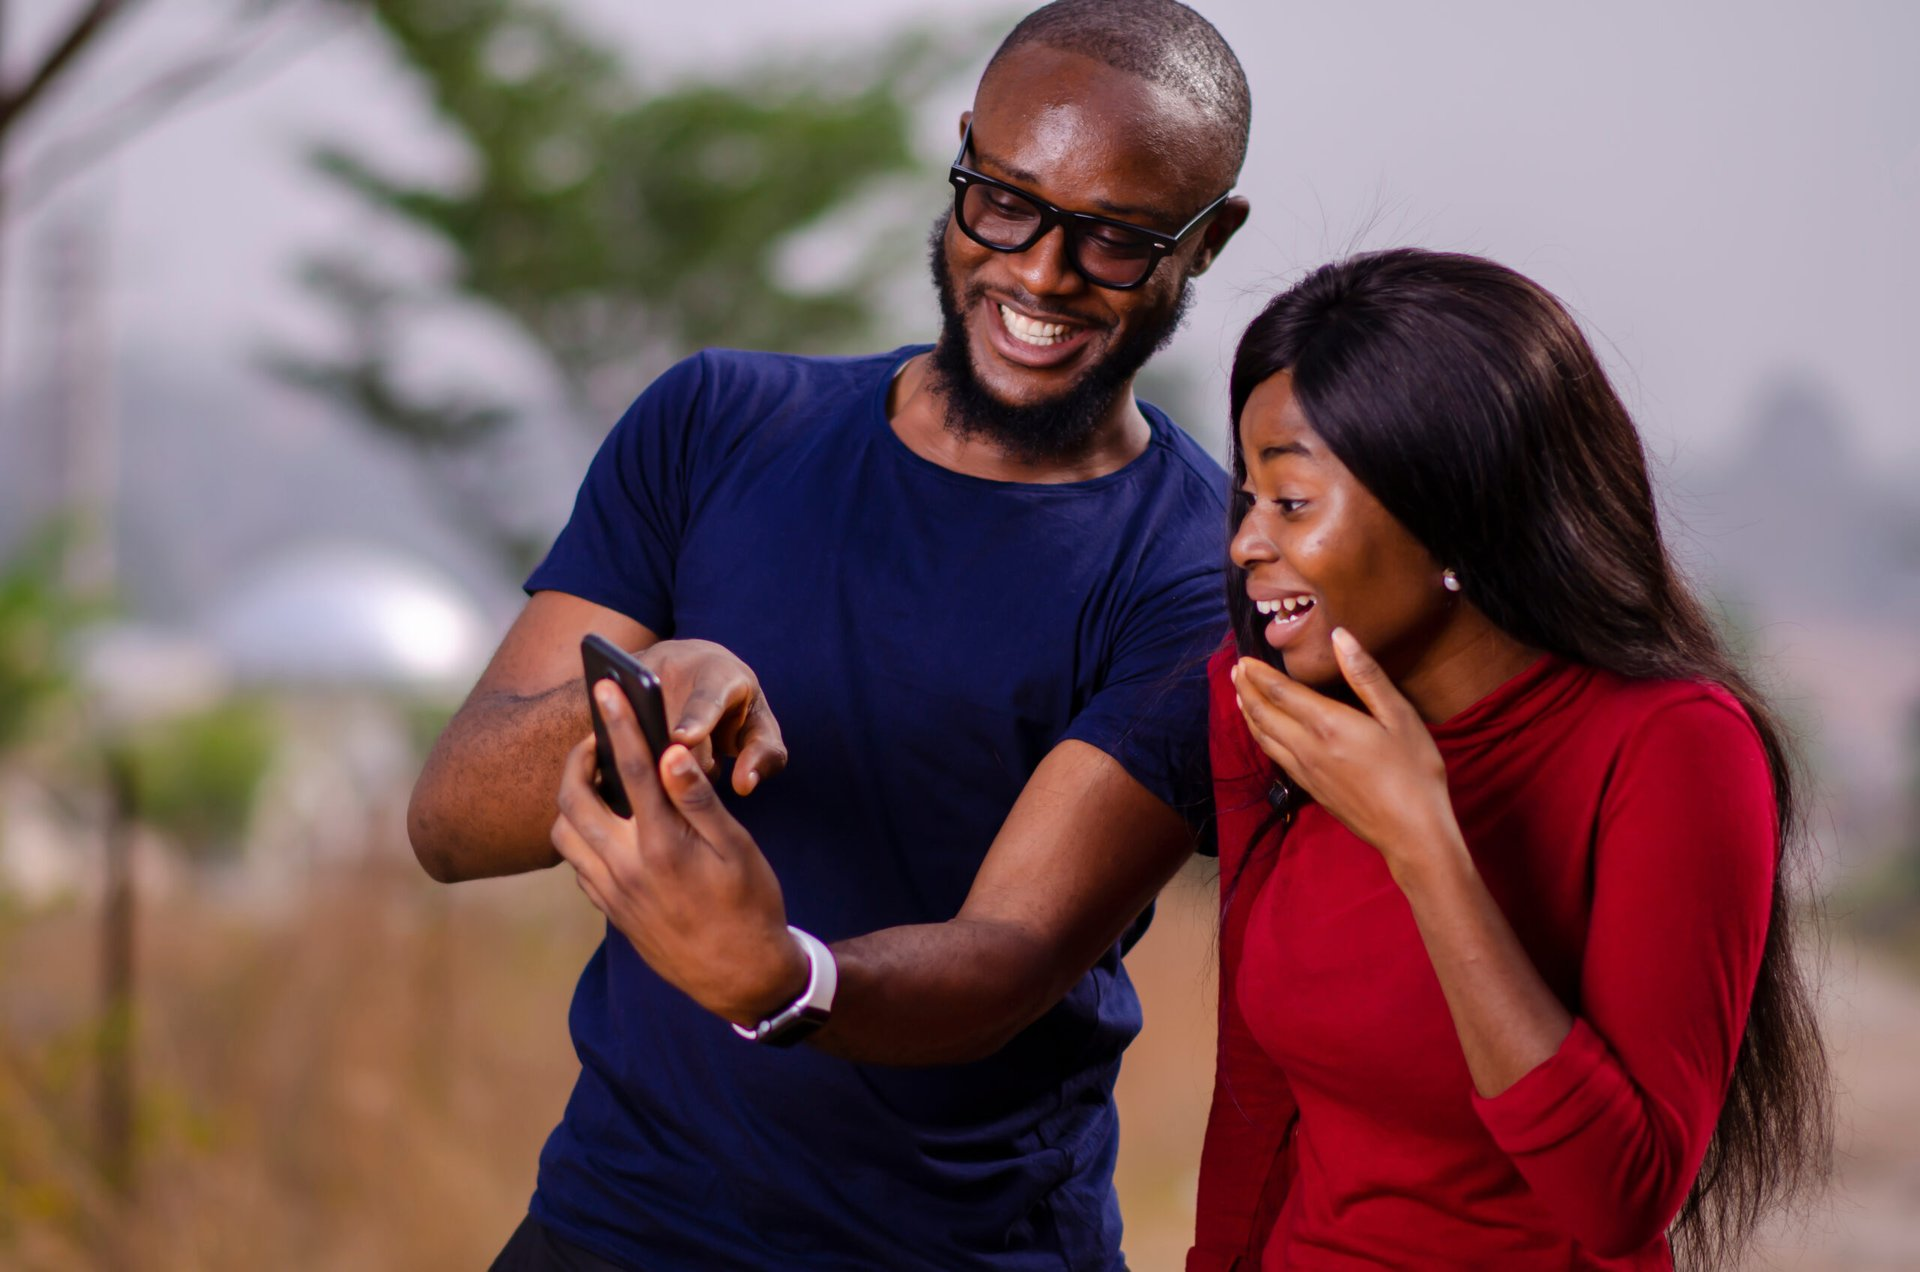 Man showing woman his great cellphone service on his smartphone